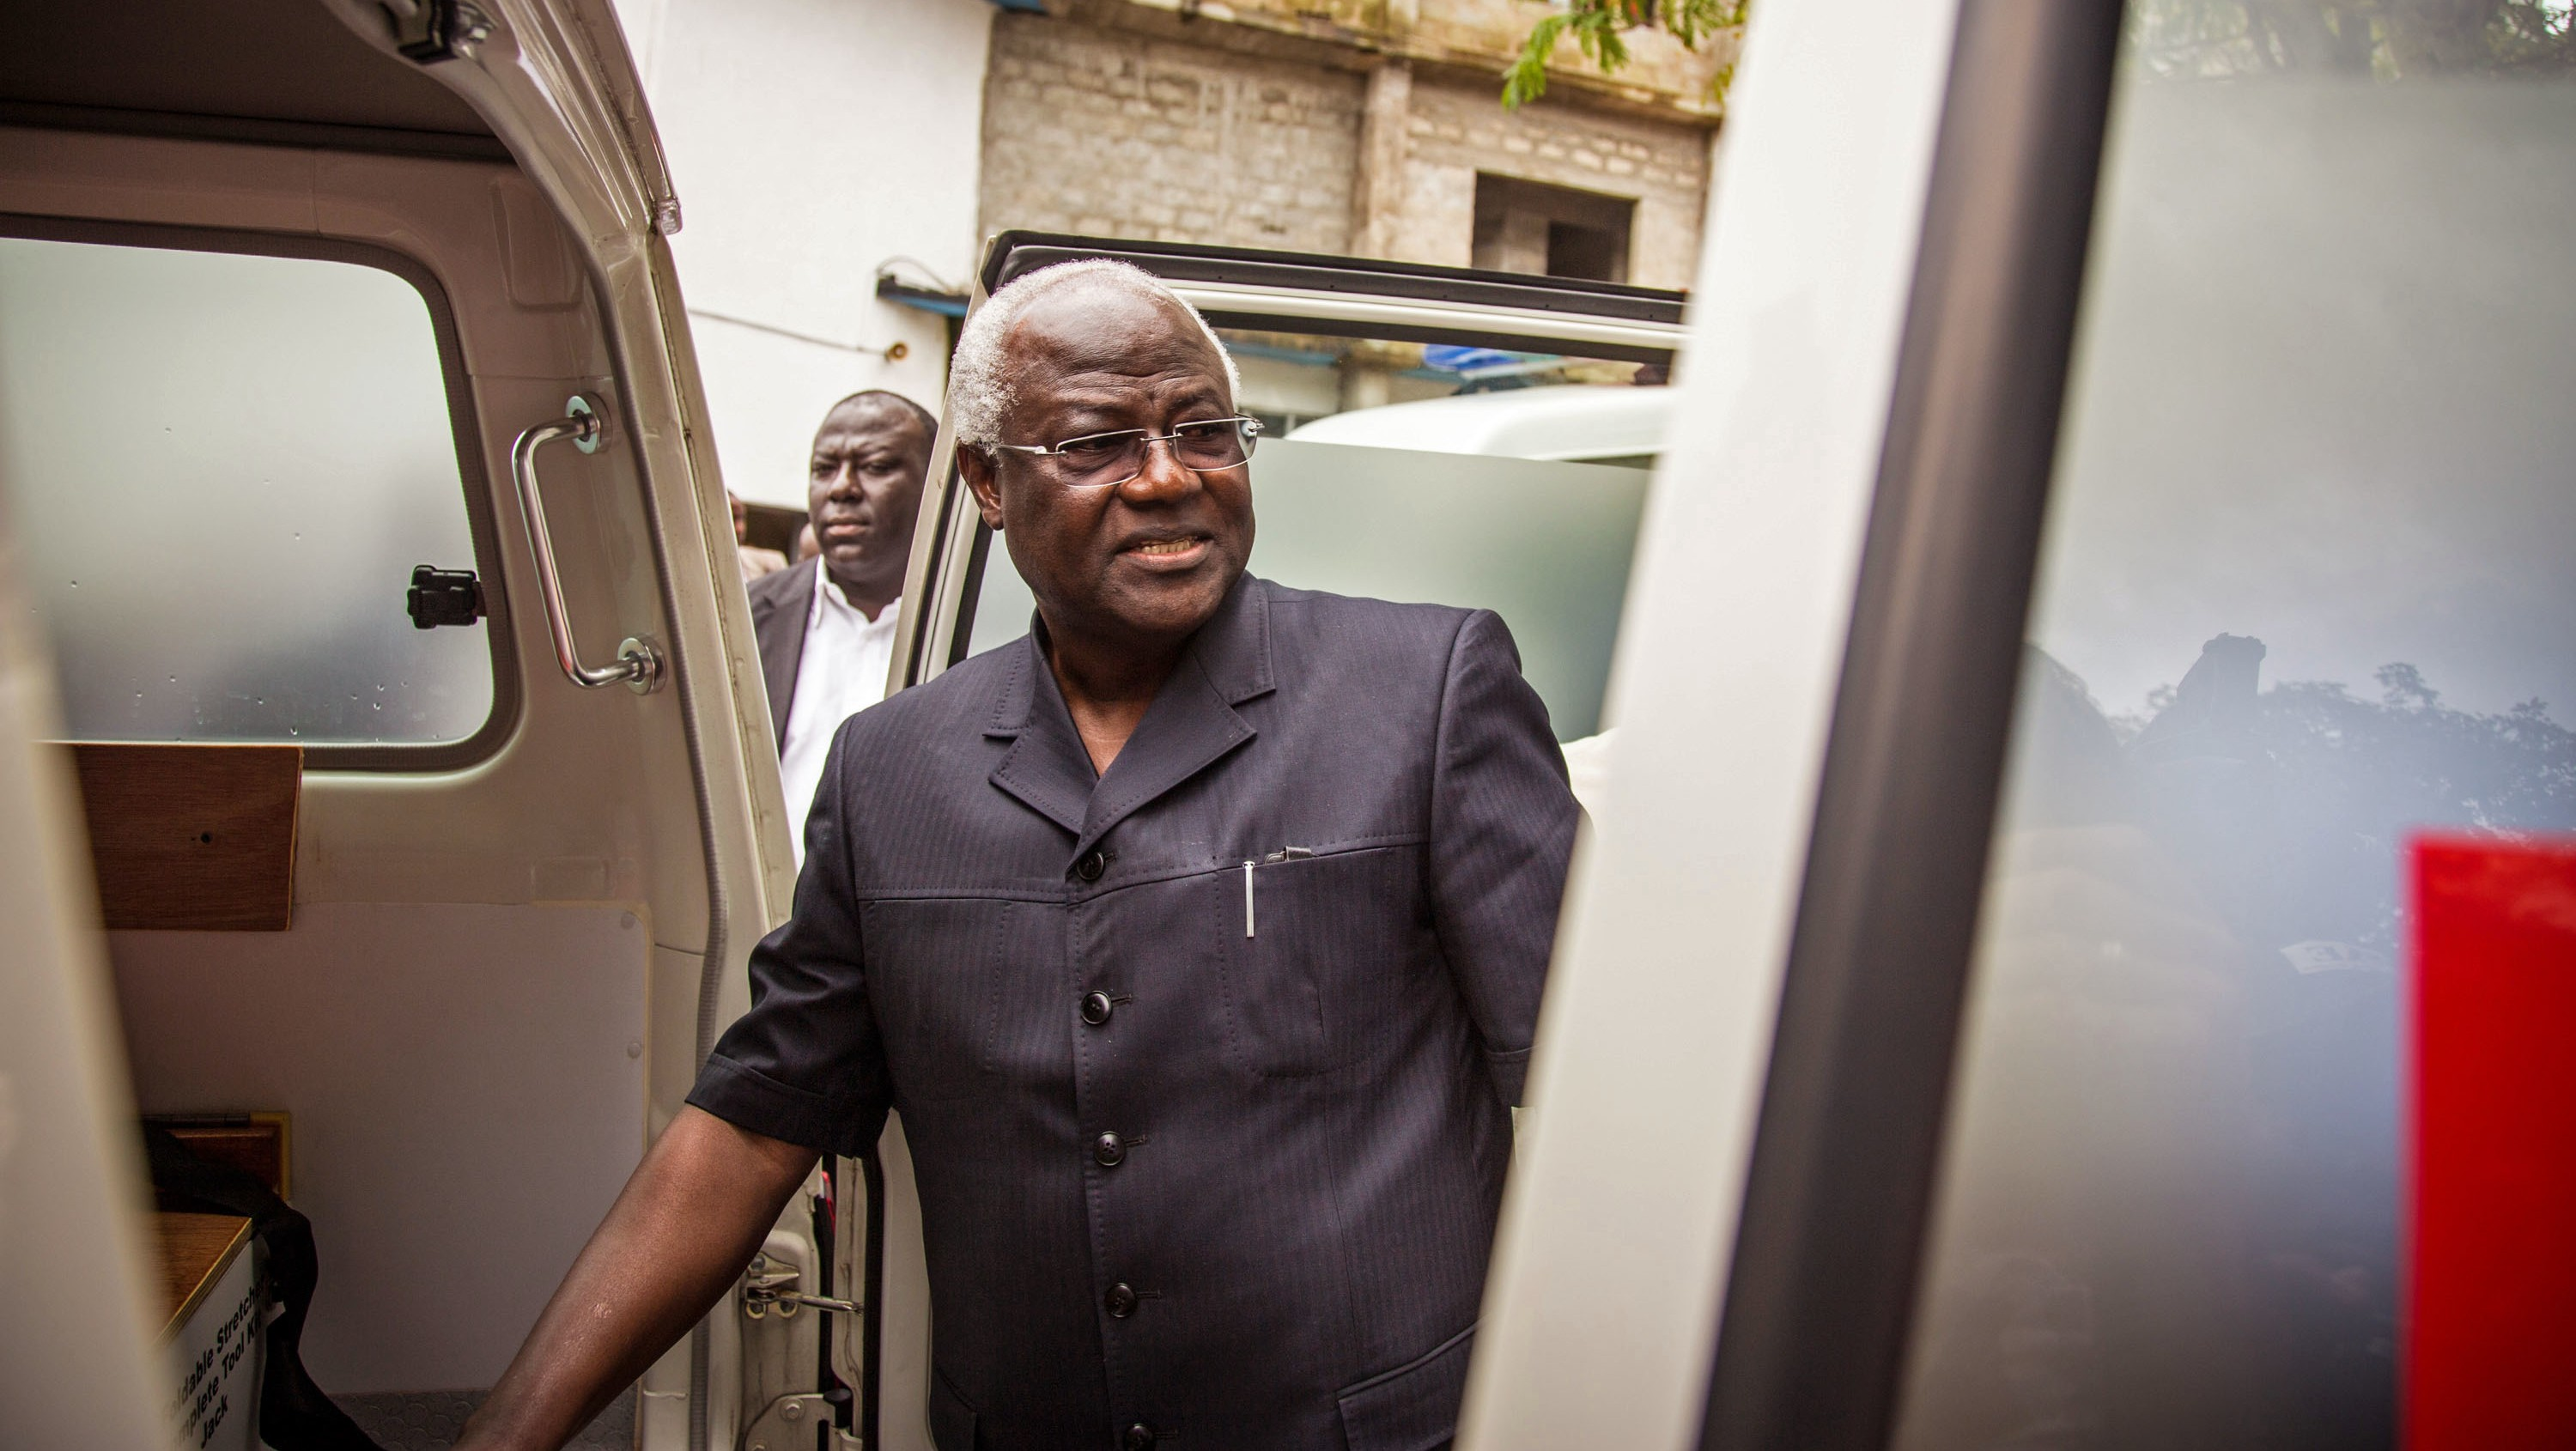 Sierra Leone's President Fired His Vice President and Now All Hell Is Breaking Loose